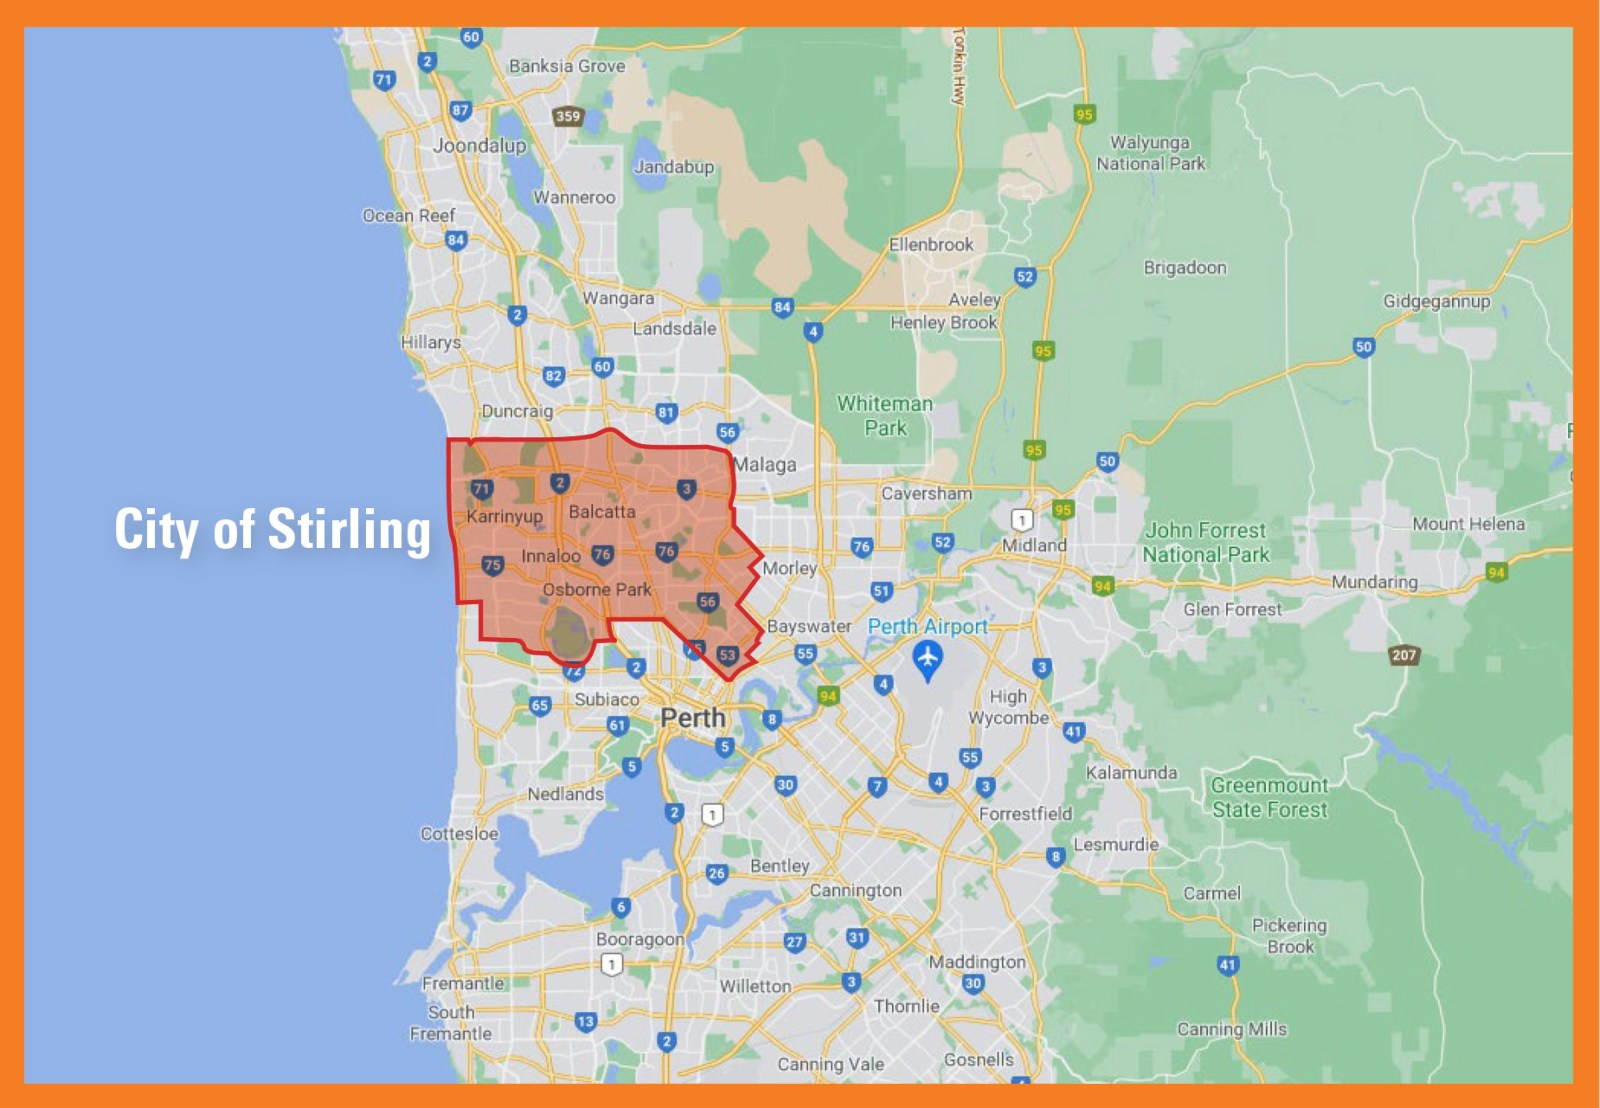 Map of City of Stirling